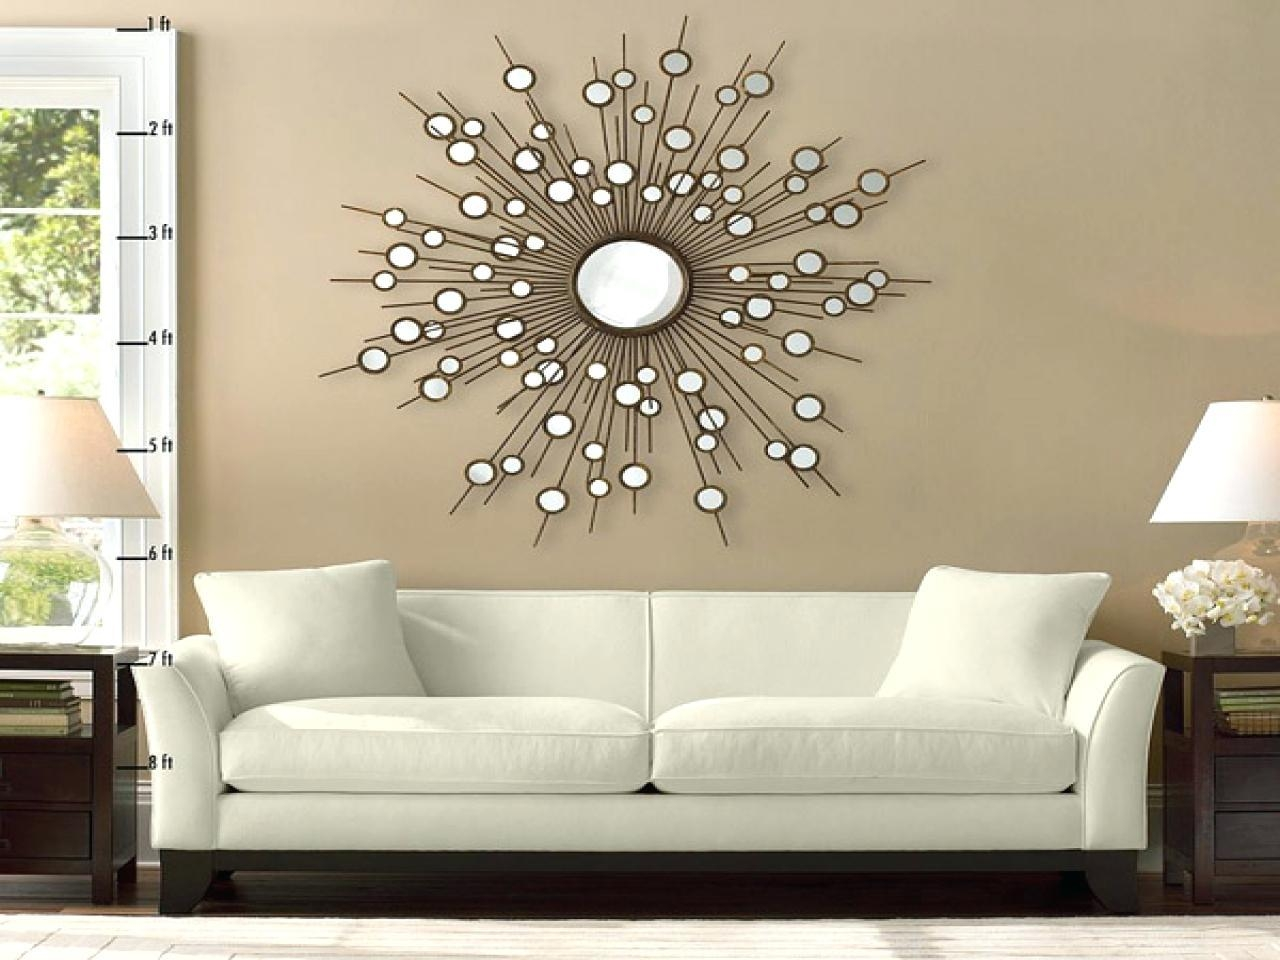 Wall Ideas : Wall Mirrors In South Africa Mirror Wall Decor Set Of Throughout Decorative Living Room Wall Mirrors (Image 20 of 20)